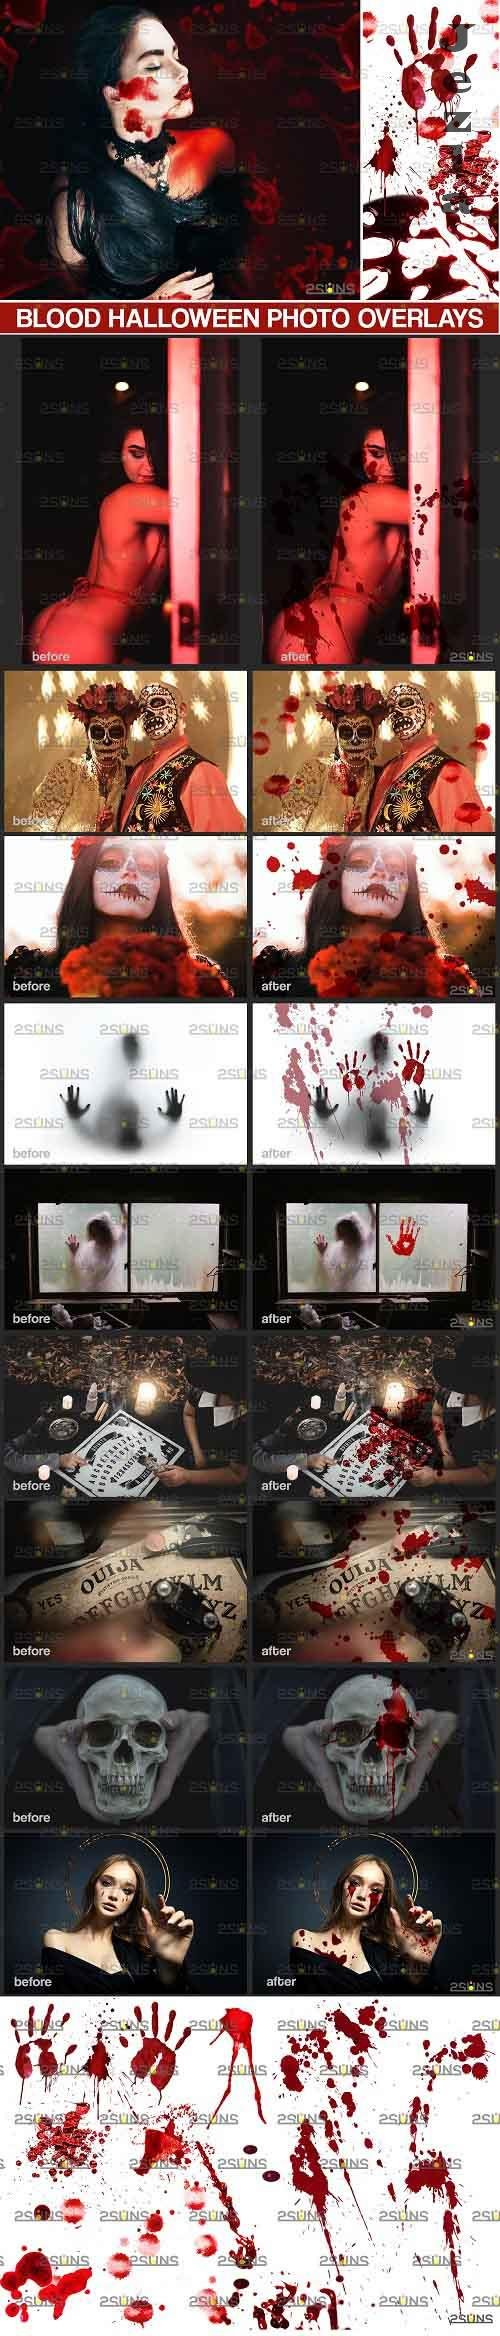 Blood Photo Overlay, Halloween overlay, blood splatter  - 719439